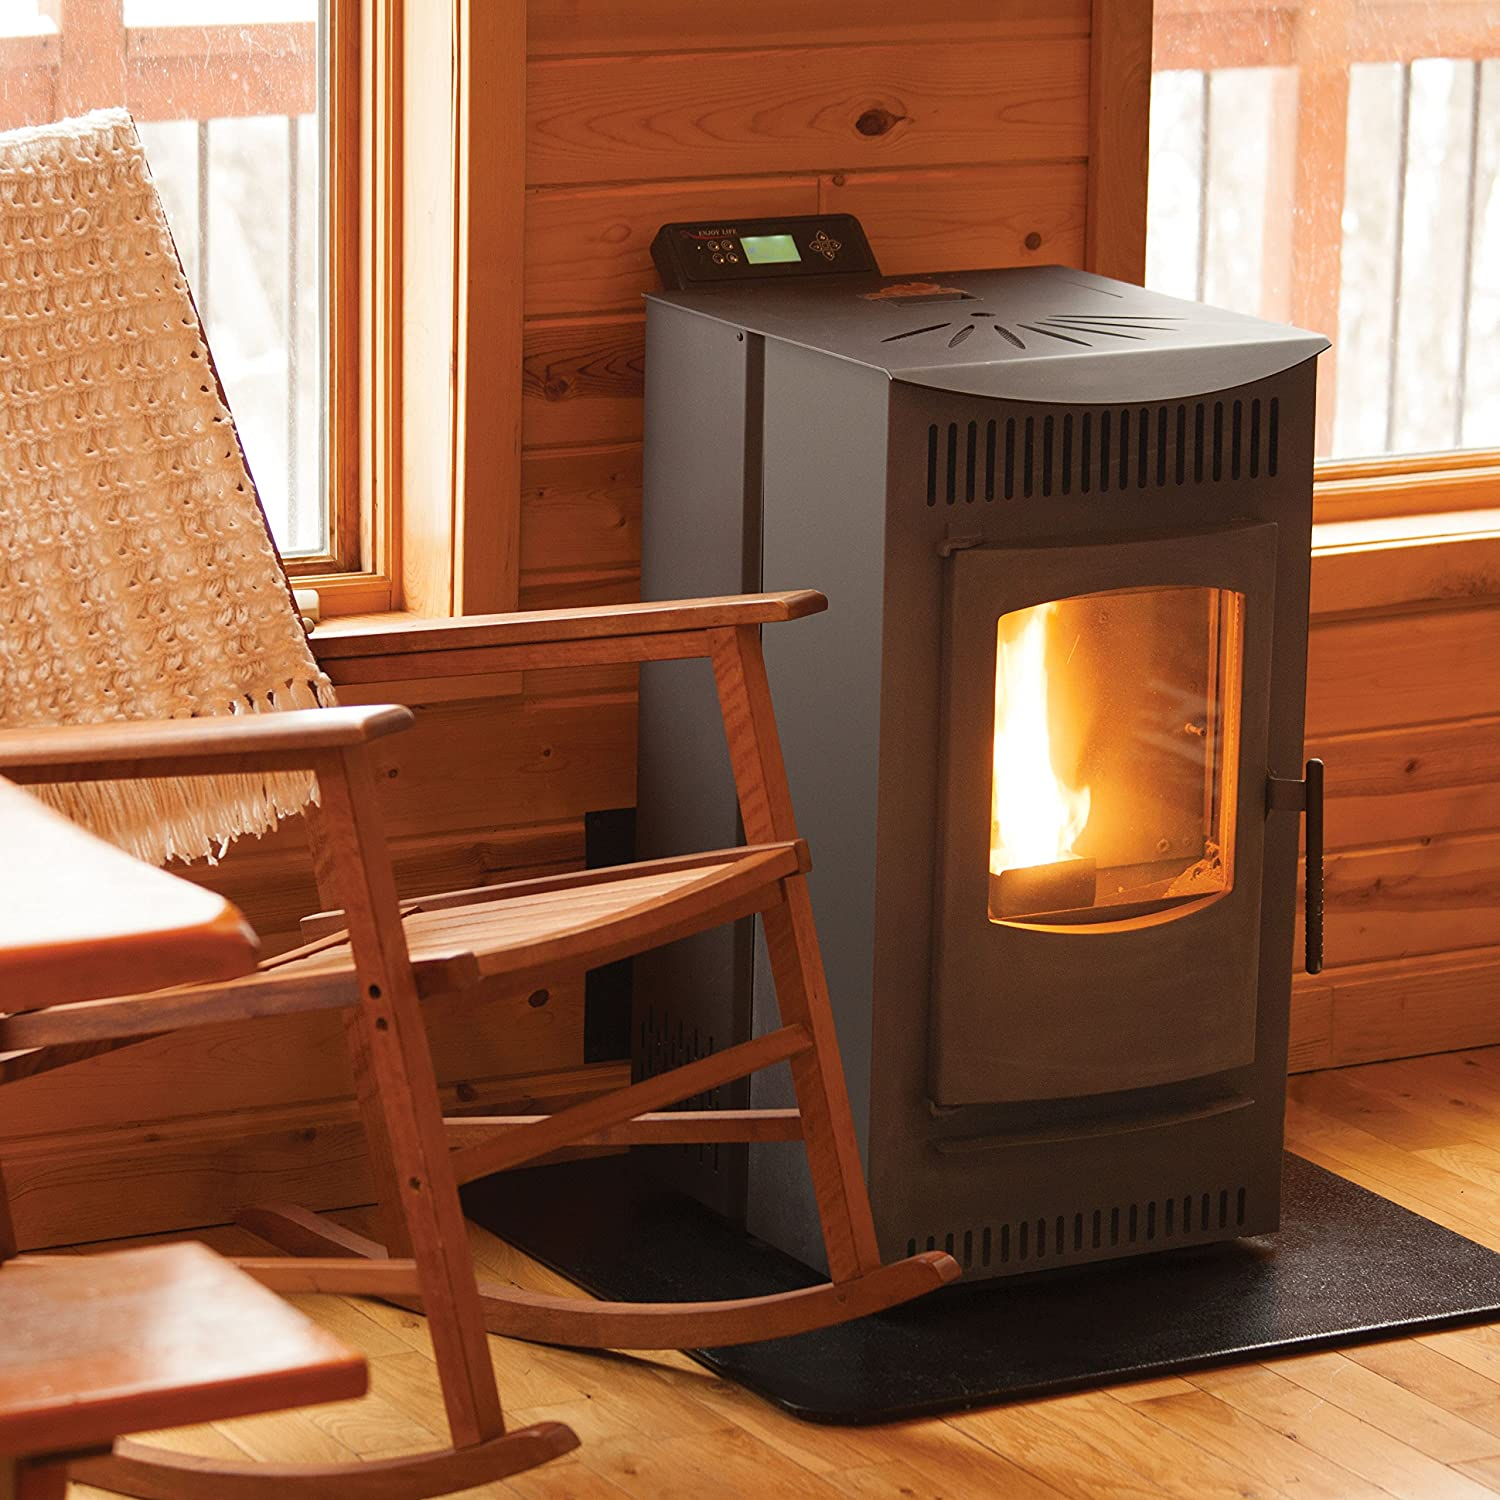 Castle 12327 - Best Pellet Stove